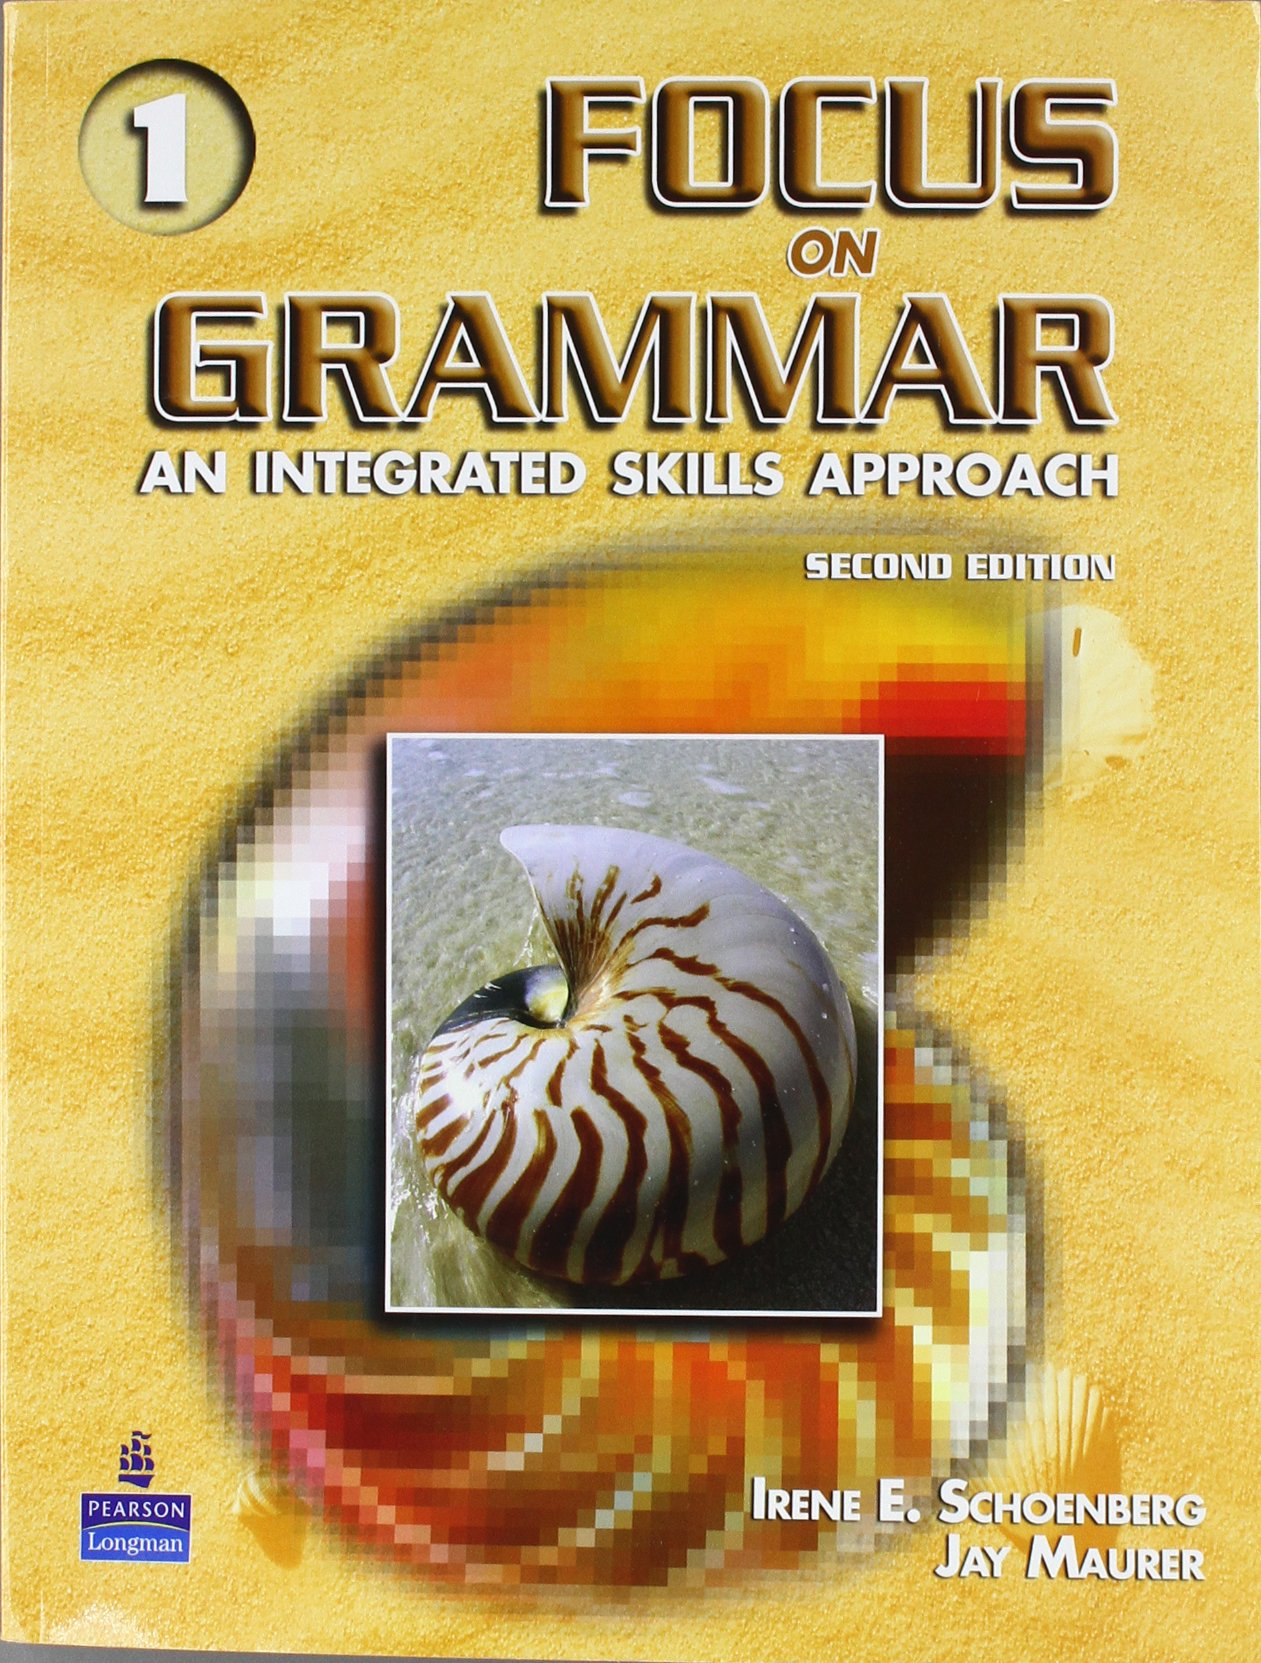 Buy Focus on Grammar 1 Book Online at Low Prices in India   Focus on  Grammar 1 Reviews & Ratings - Amazon.in